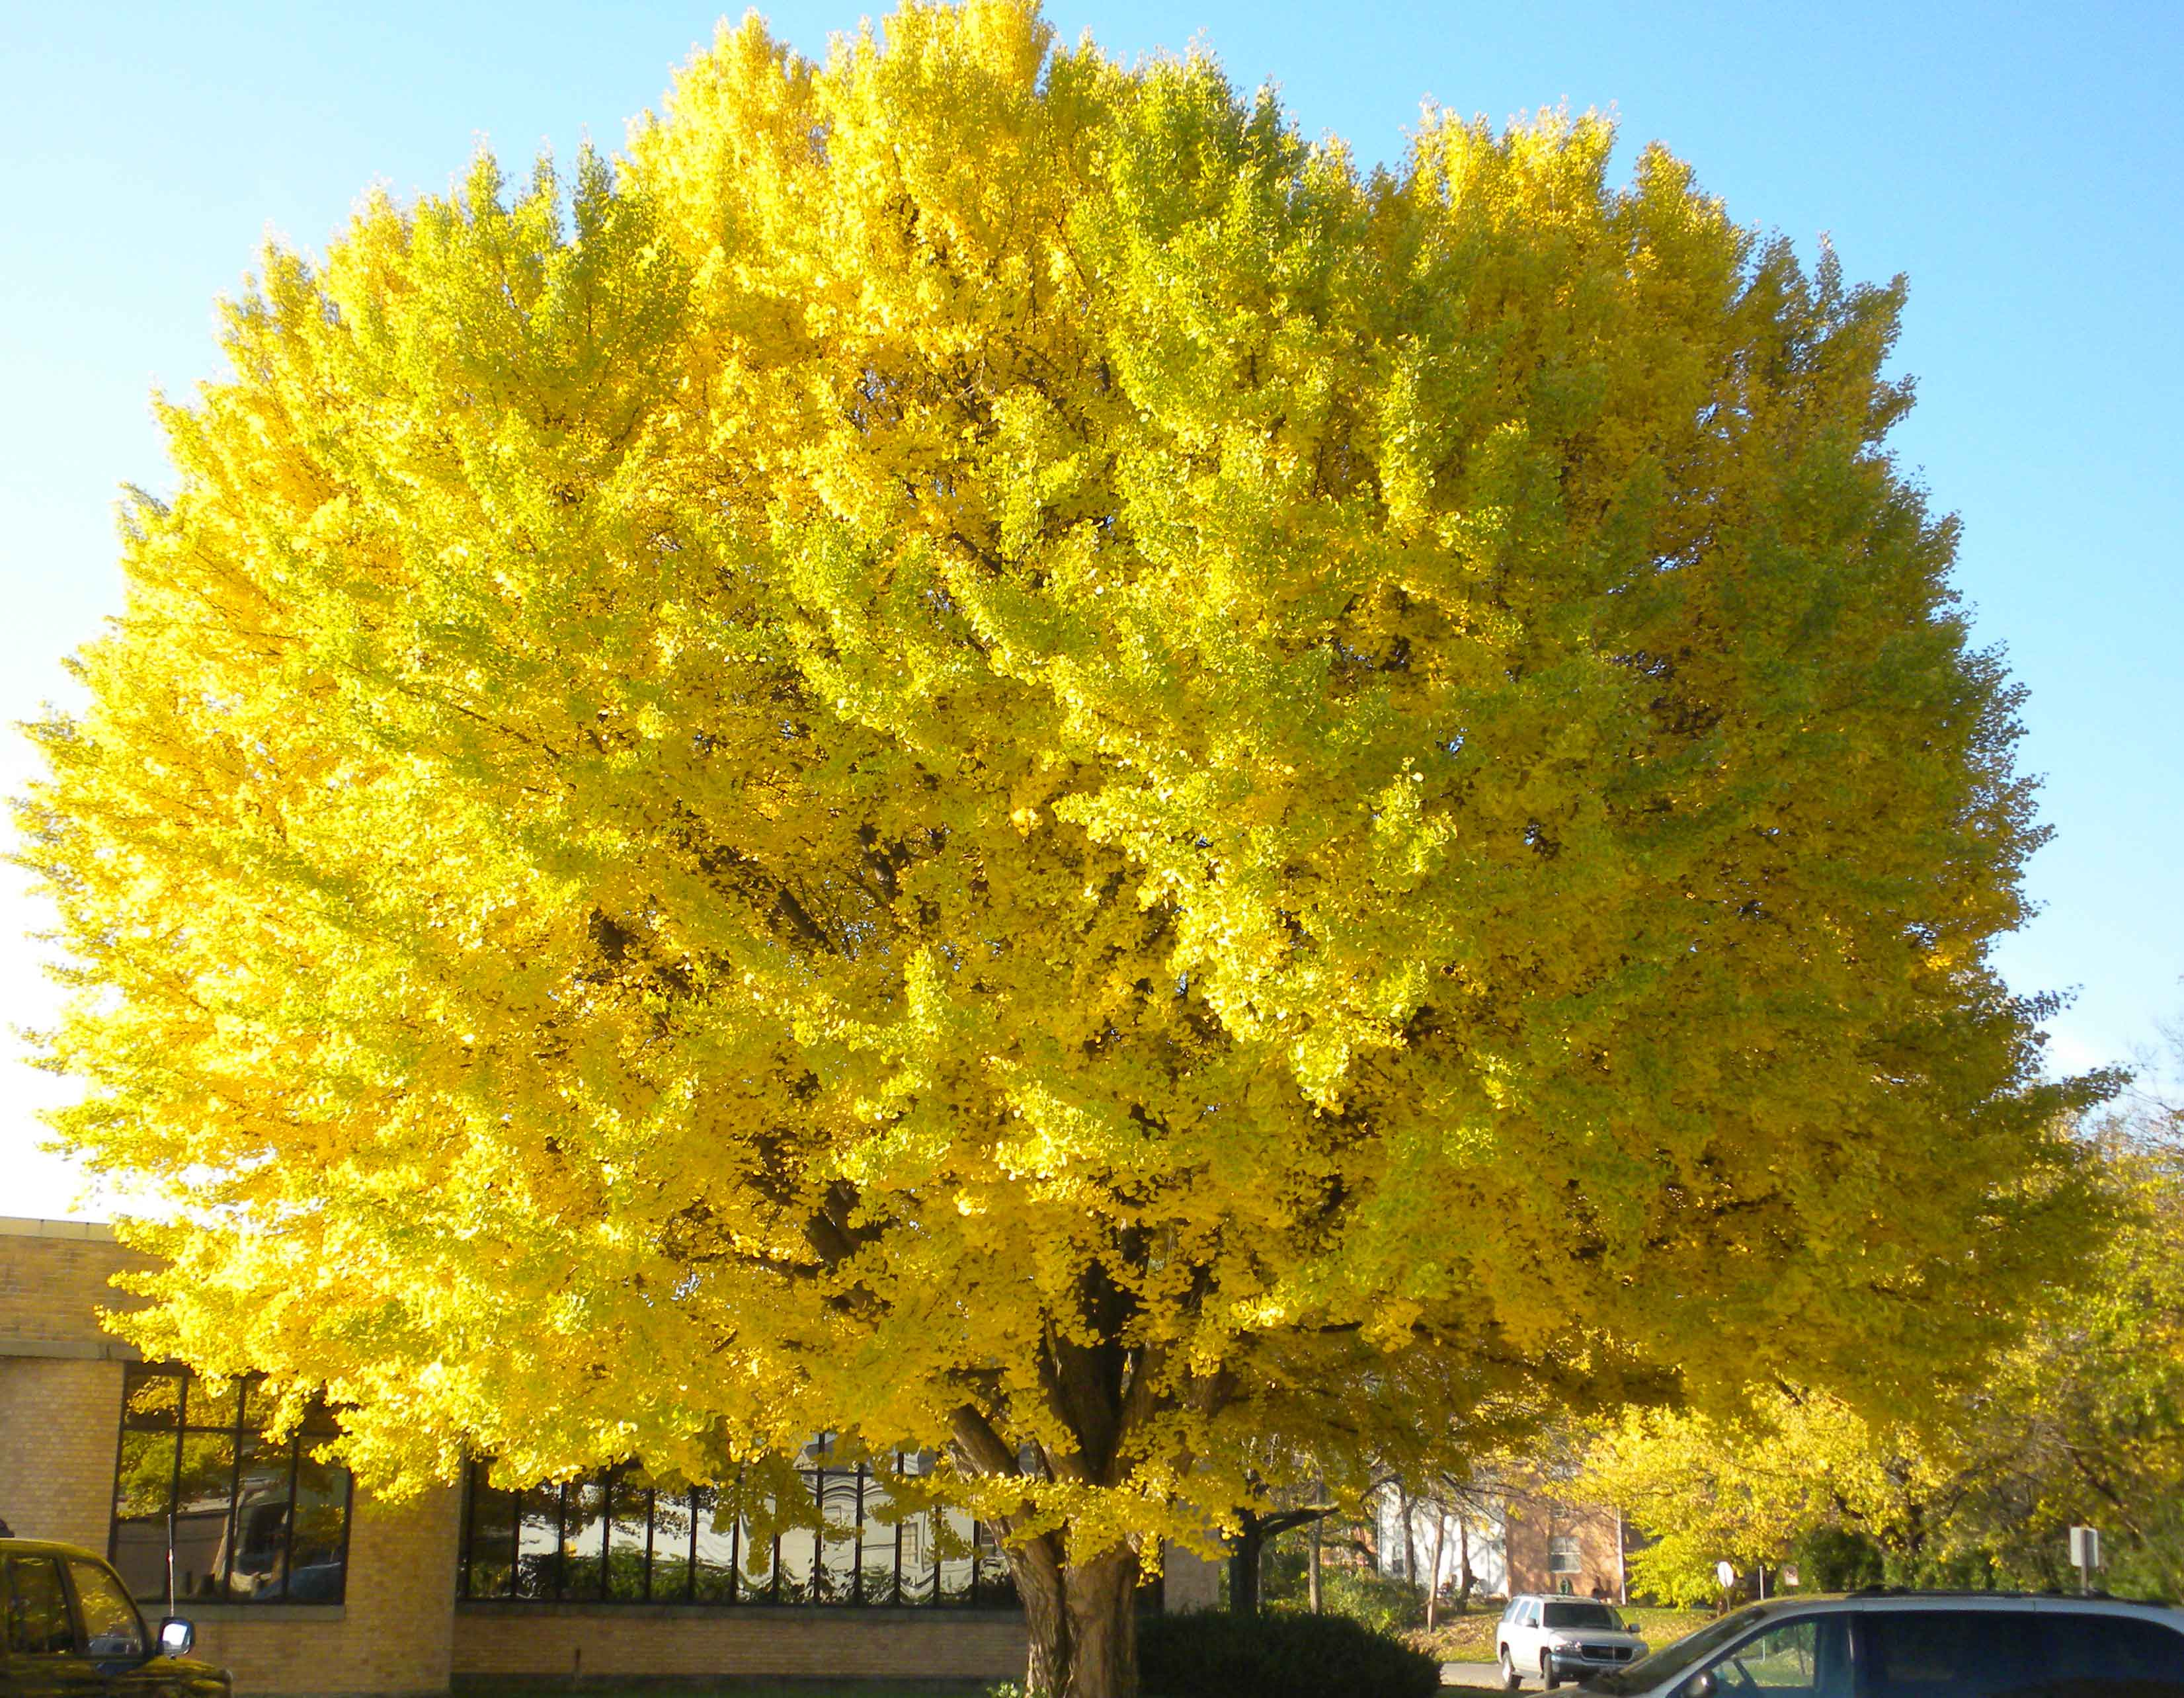 the ginkgo tree Learn about ginkgo biloba, a tree prized for its autumn show of buttery-yellow leaves, that is also one of the the most reliable and common street trees.